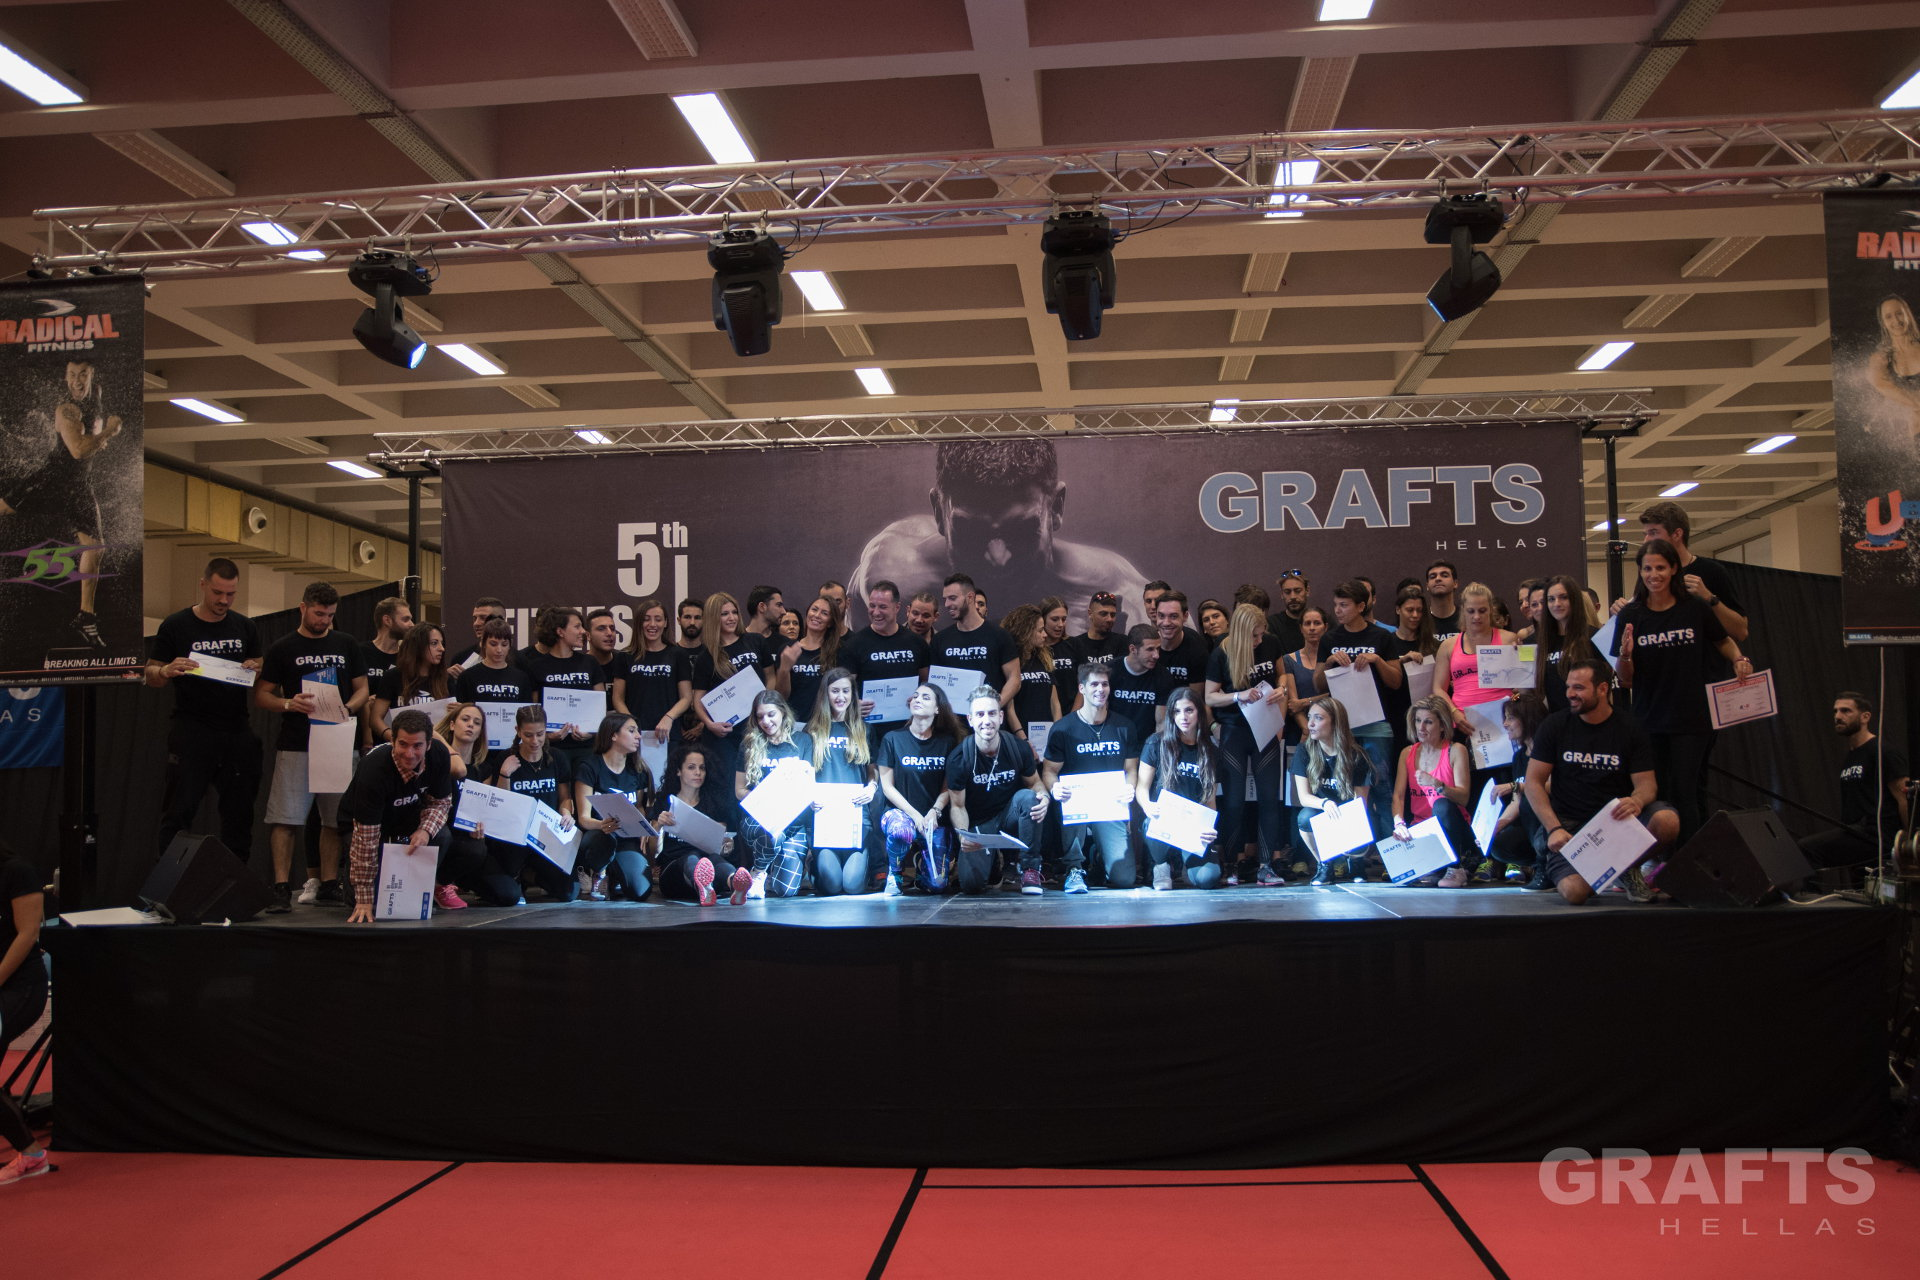 GRAFTS Hellas - Athens graduation 2017 - Photo 2